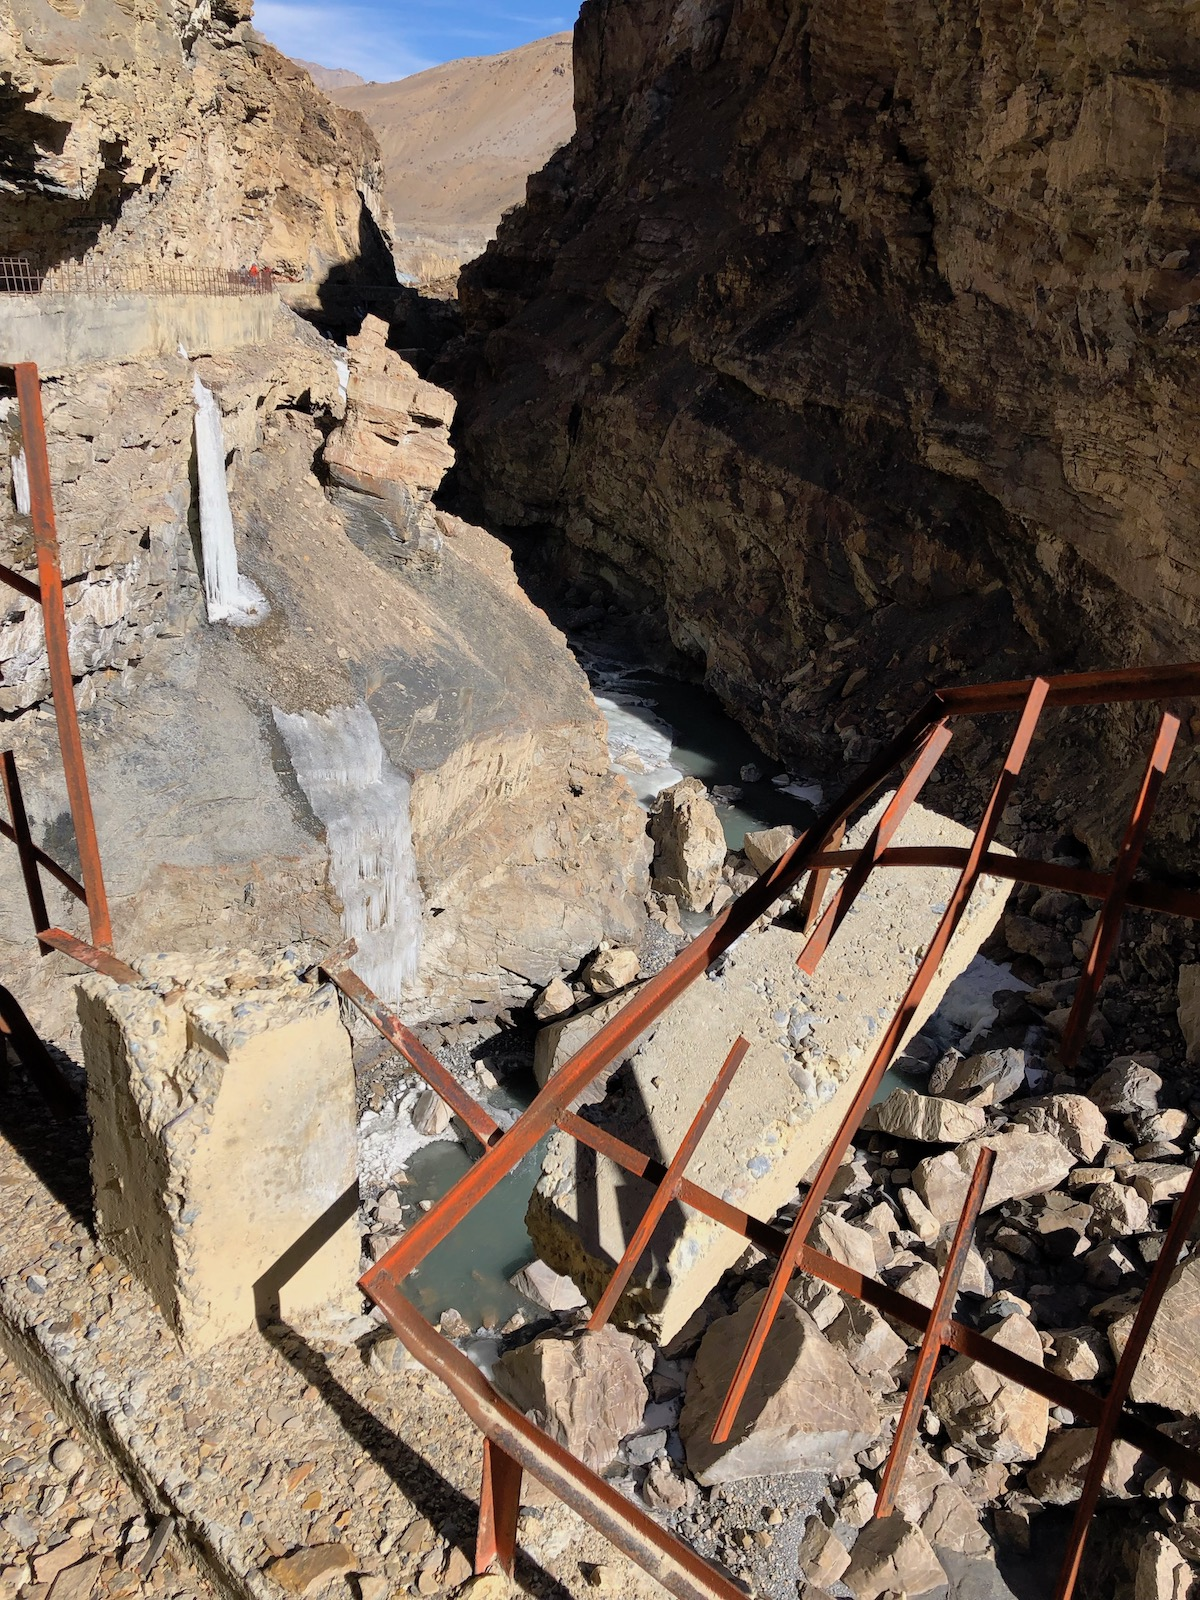 This photo shows some of the hazards that existed at the Lingti crag, which Novak and Delap dubbed Indiana Jones and the Crag of Doom. [Photo] Ari Novak